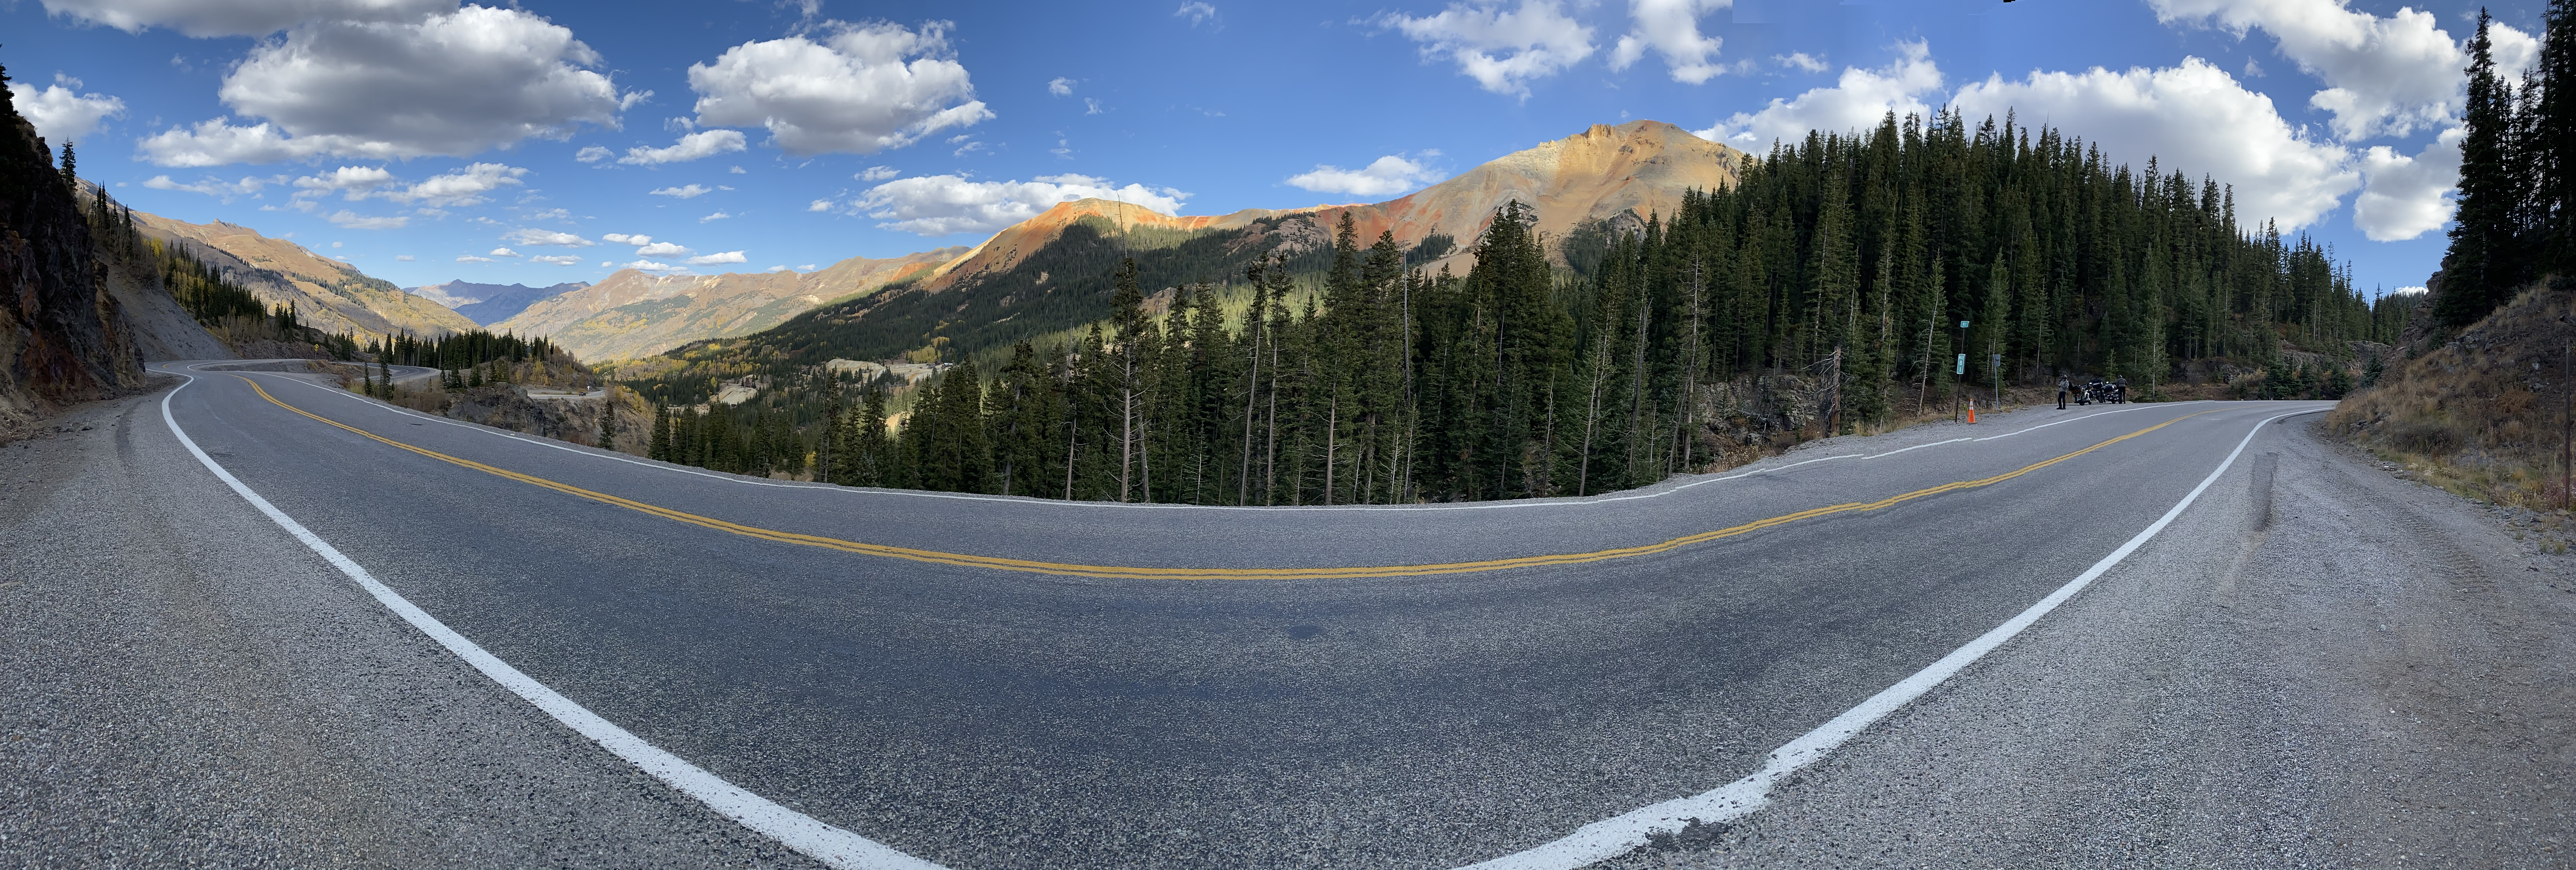 A distorted panorama on the road Climbing Red Mountain Pass on US550.